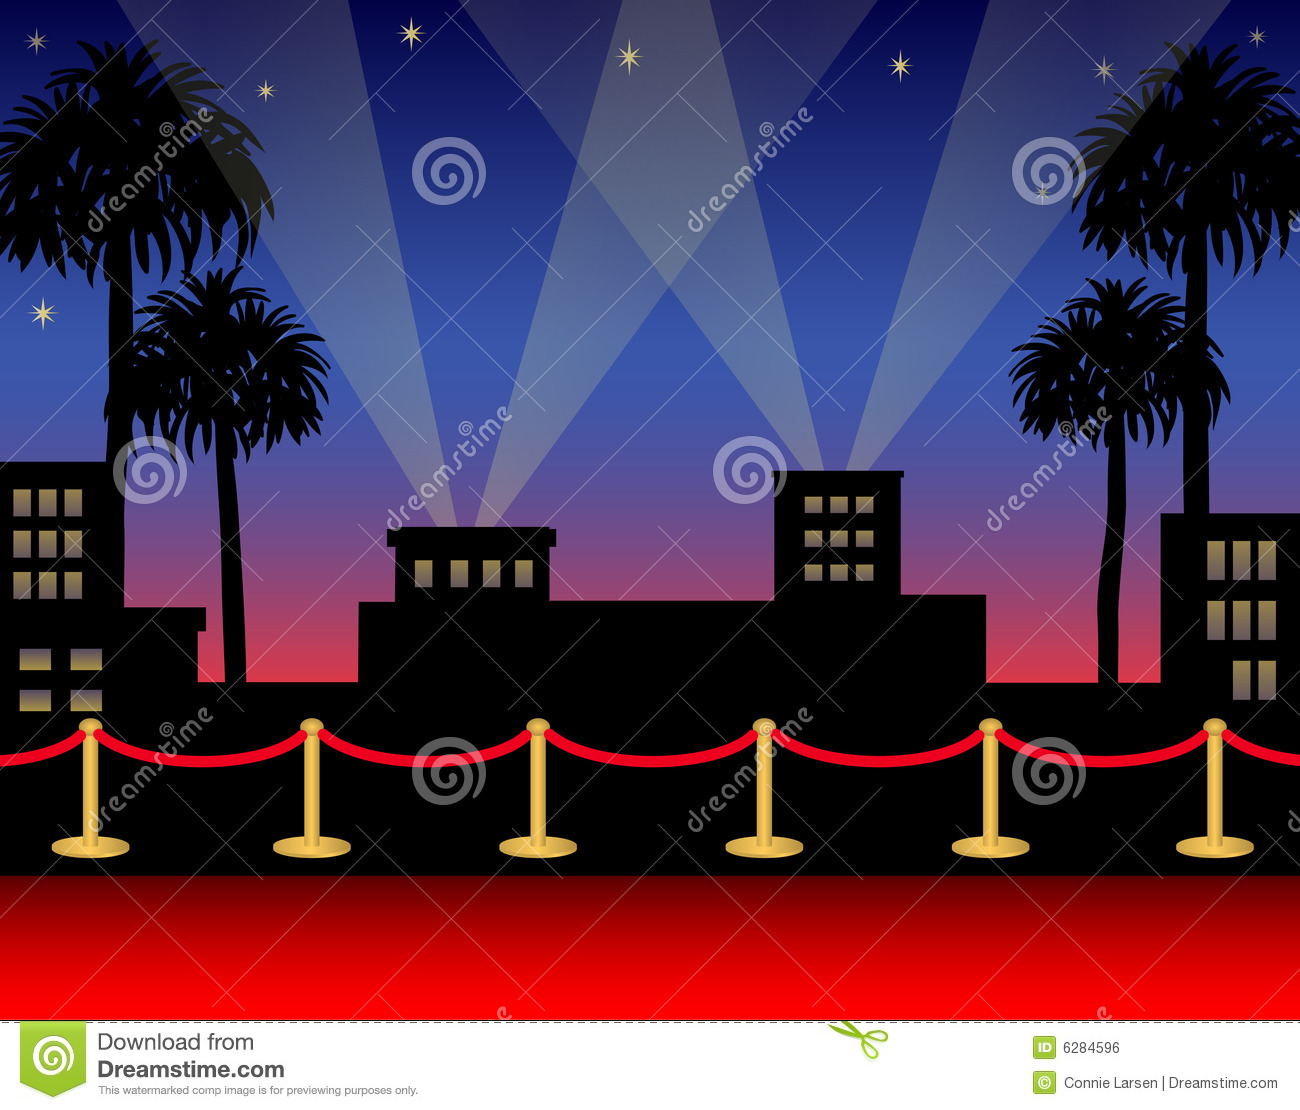 Hollywood Roter Teppich Tapis Rouge De Hollywood Illustration De Vecteur